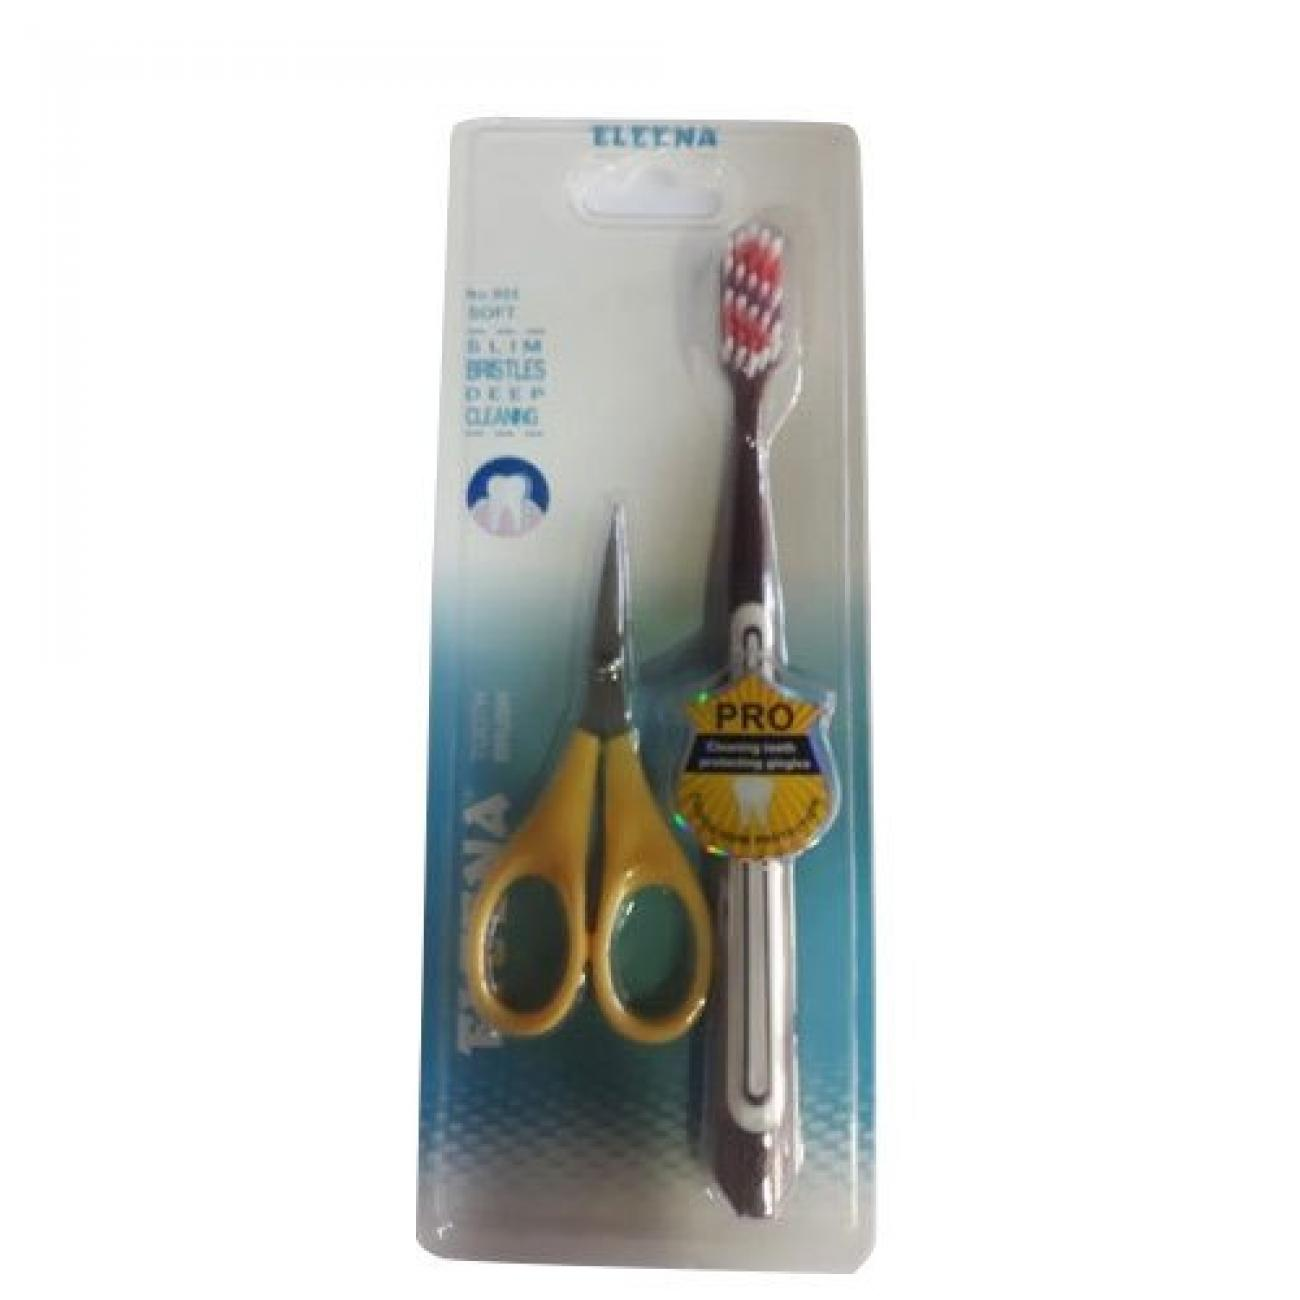 adult-rubber-grip-plastic-toothbrush-500x500